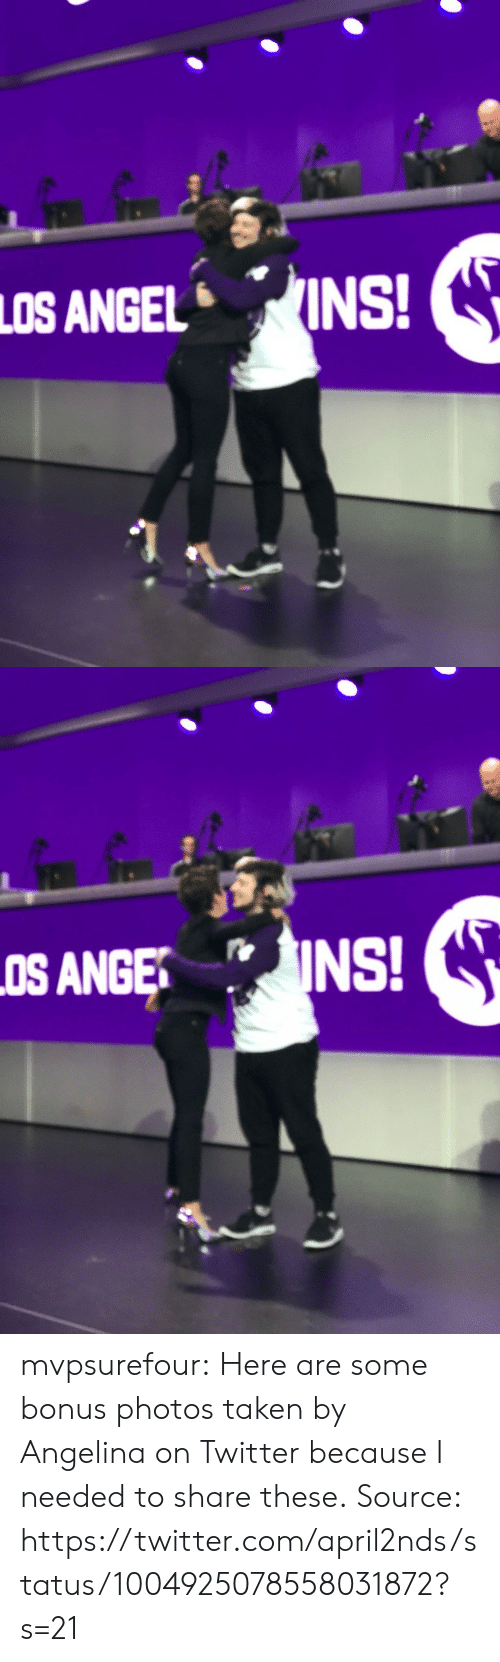 angelina: LOS ANGELINS! mvpsurefour: Here are some bonus photos taken by Angelina on Twitter because I needed to share these.  Source: https://twitter.com/april2nds/status/1004925078558031872?s=21